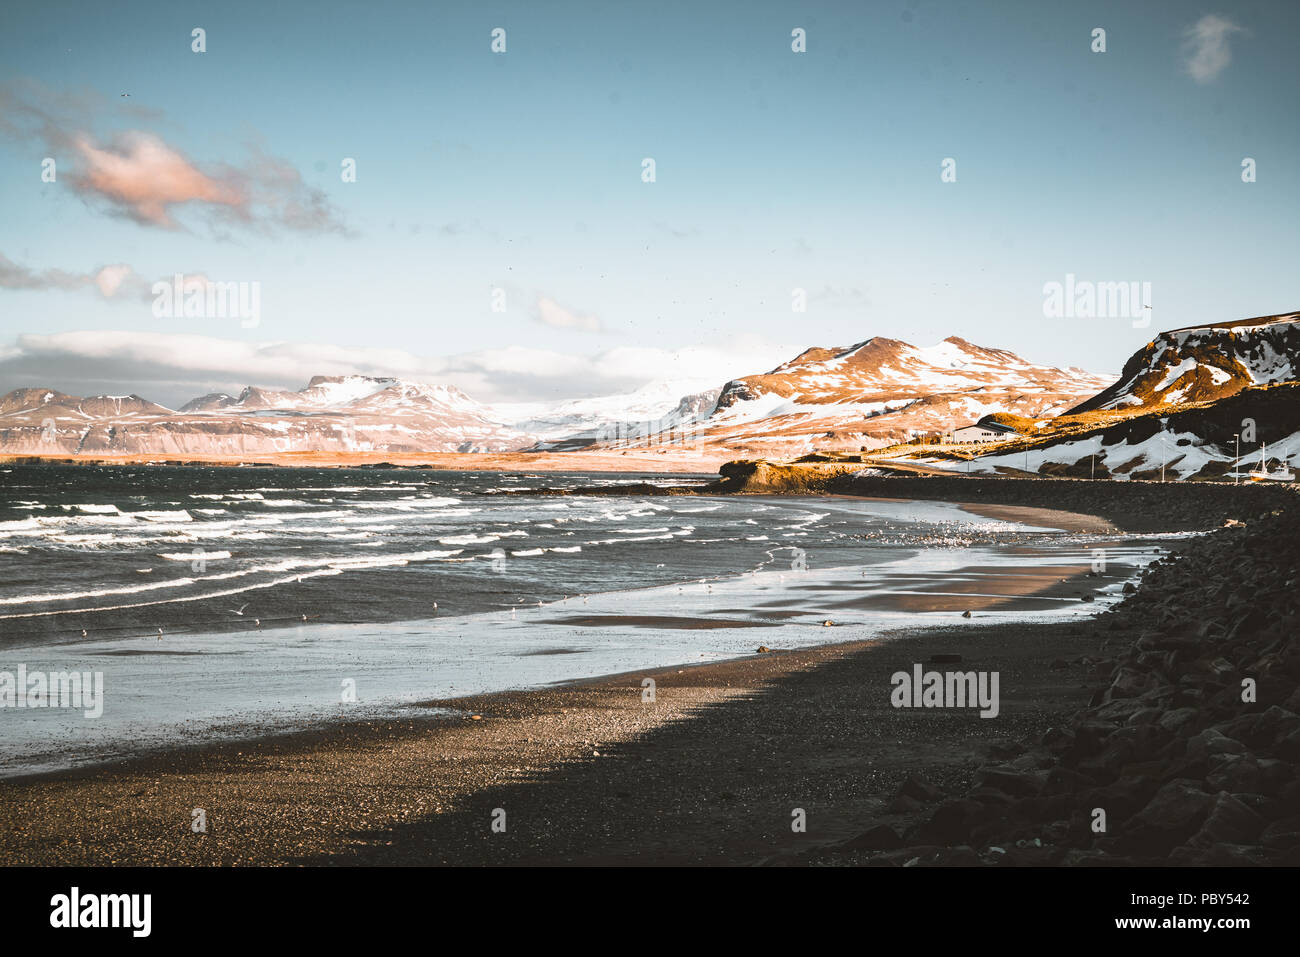 Snaefellsnes Weste Iceland Ocean view with beach and mountains and blue sky in the background. - Stock Image